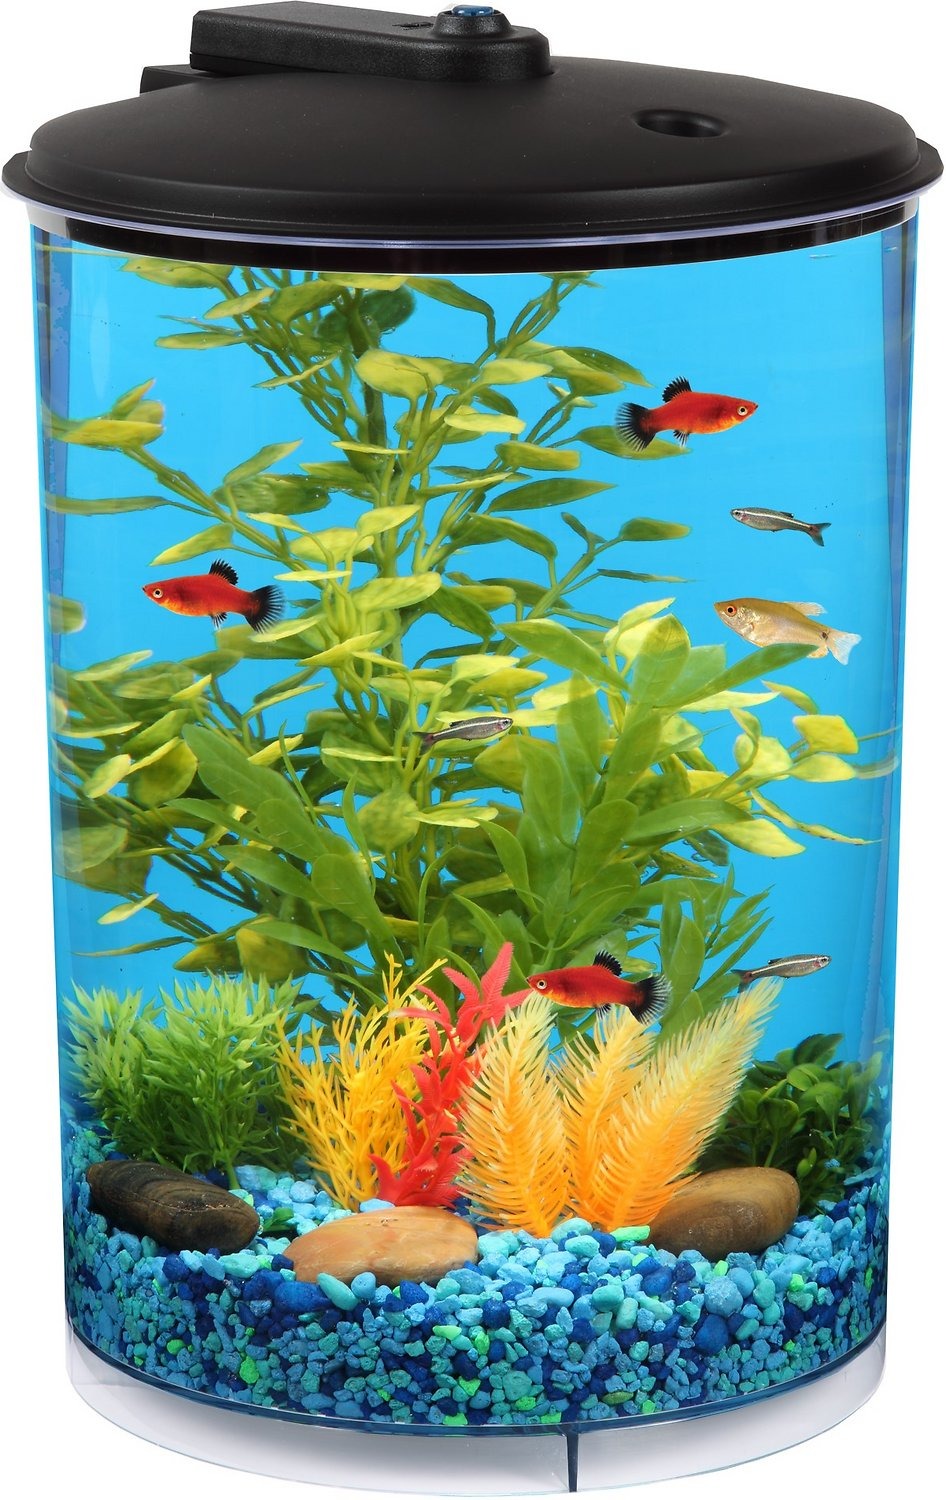 Koller Products Tropical 360 View Aquarium Starter Kit, 3-gal - Chewy.com